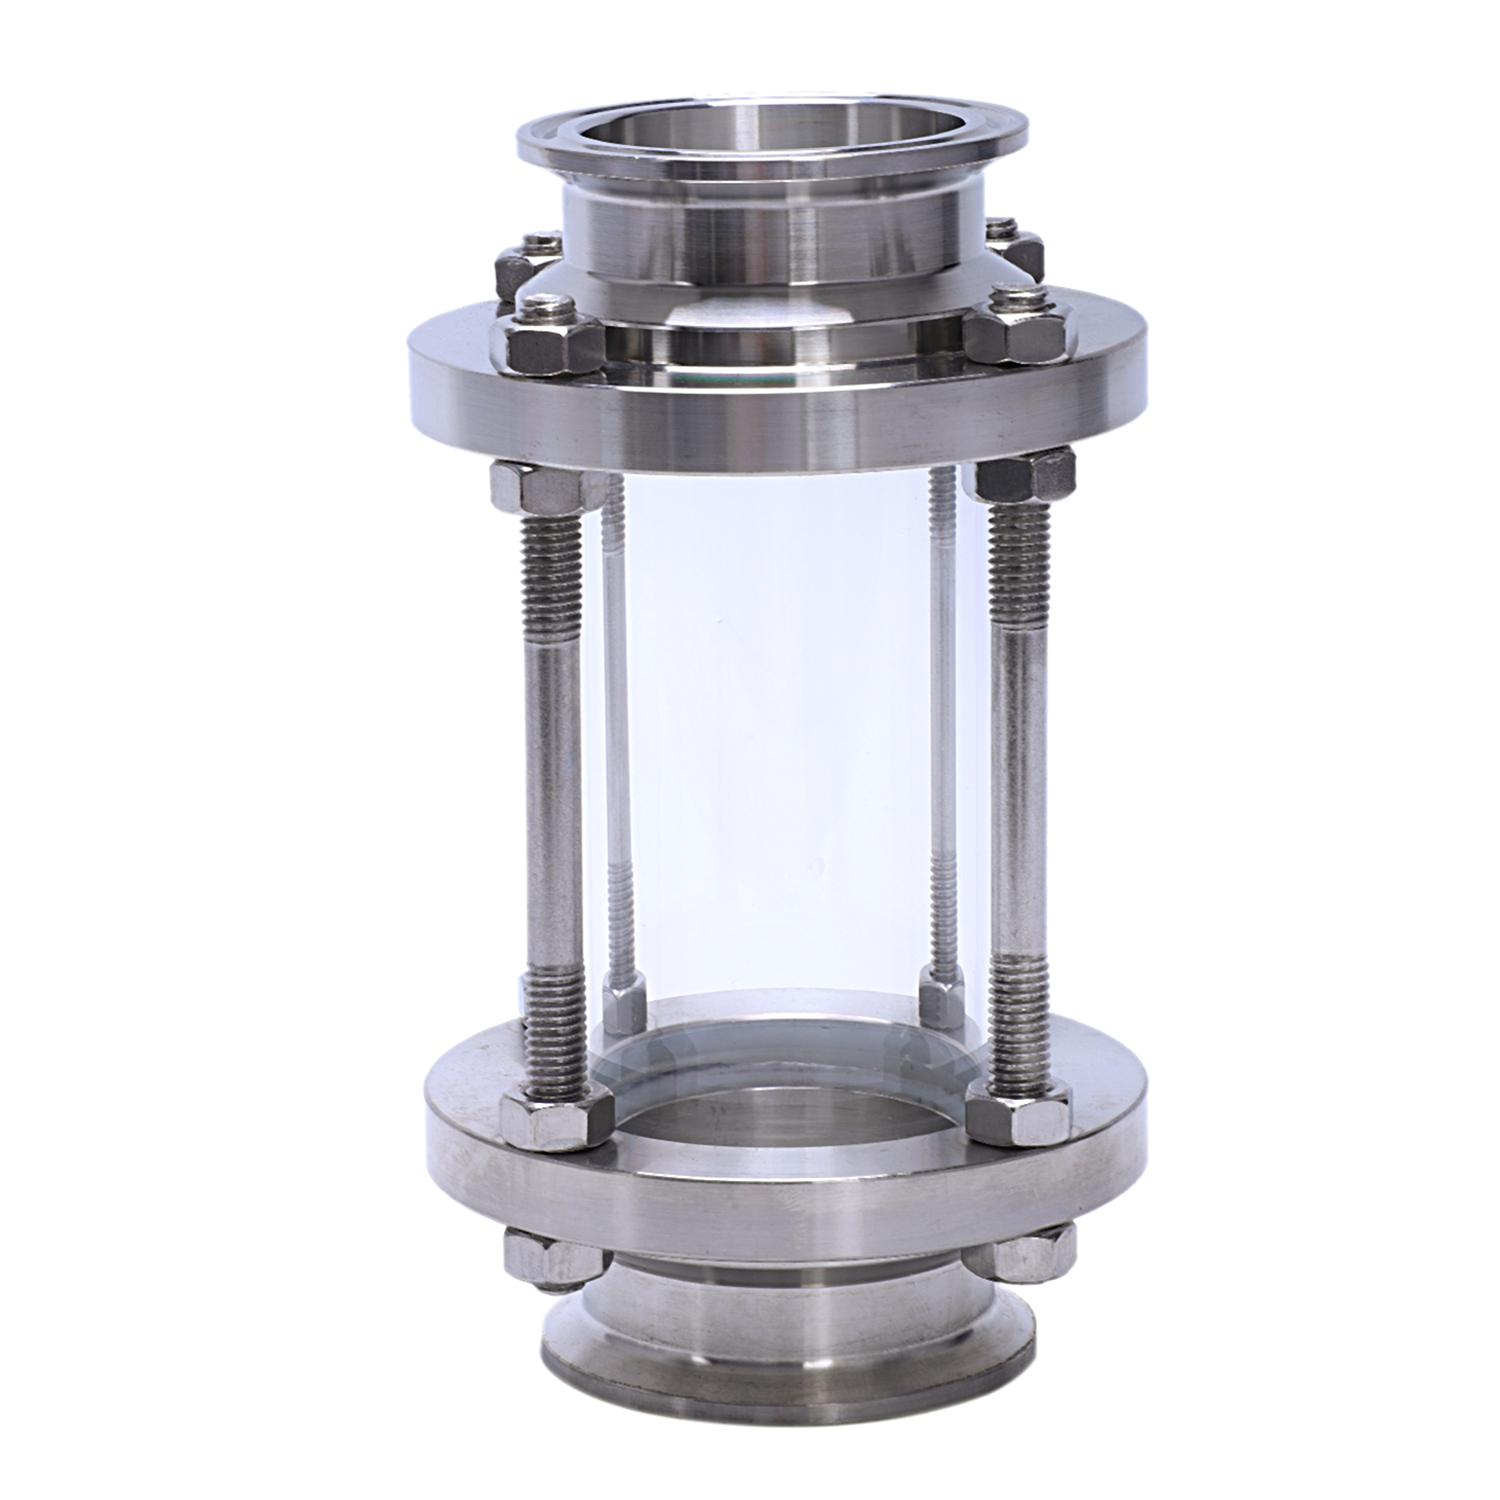 In-Line Sight Glass With Clamp End,Flow Sanitary Straight Sight Glass SUS316 2 Inch Tri Clamp Type (Flow Pipe OD 51MM)